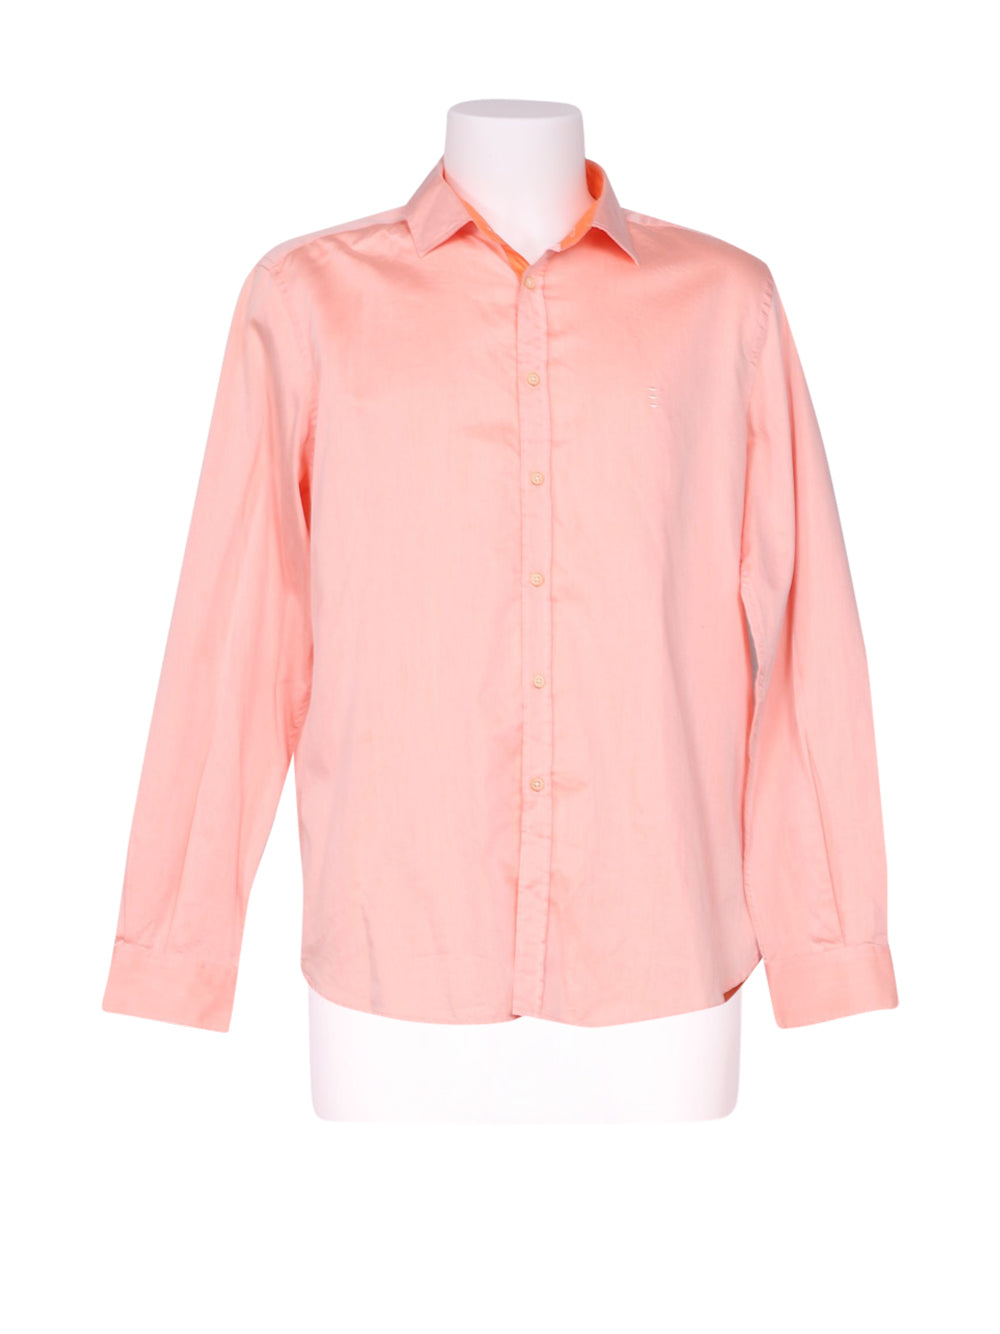 Front photo of Preloved Florentino Pink Man's shirt - size 42/XL